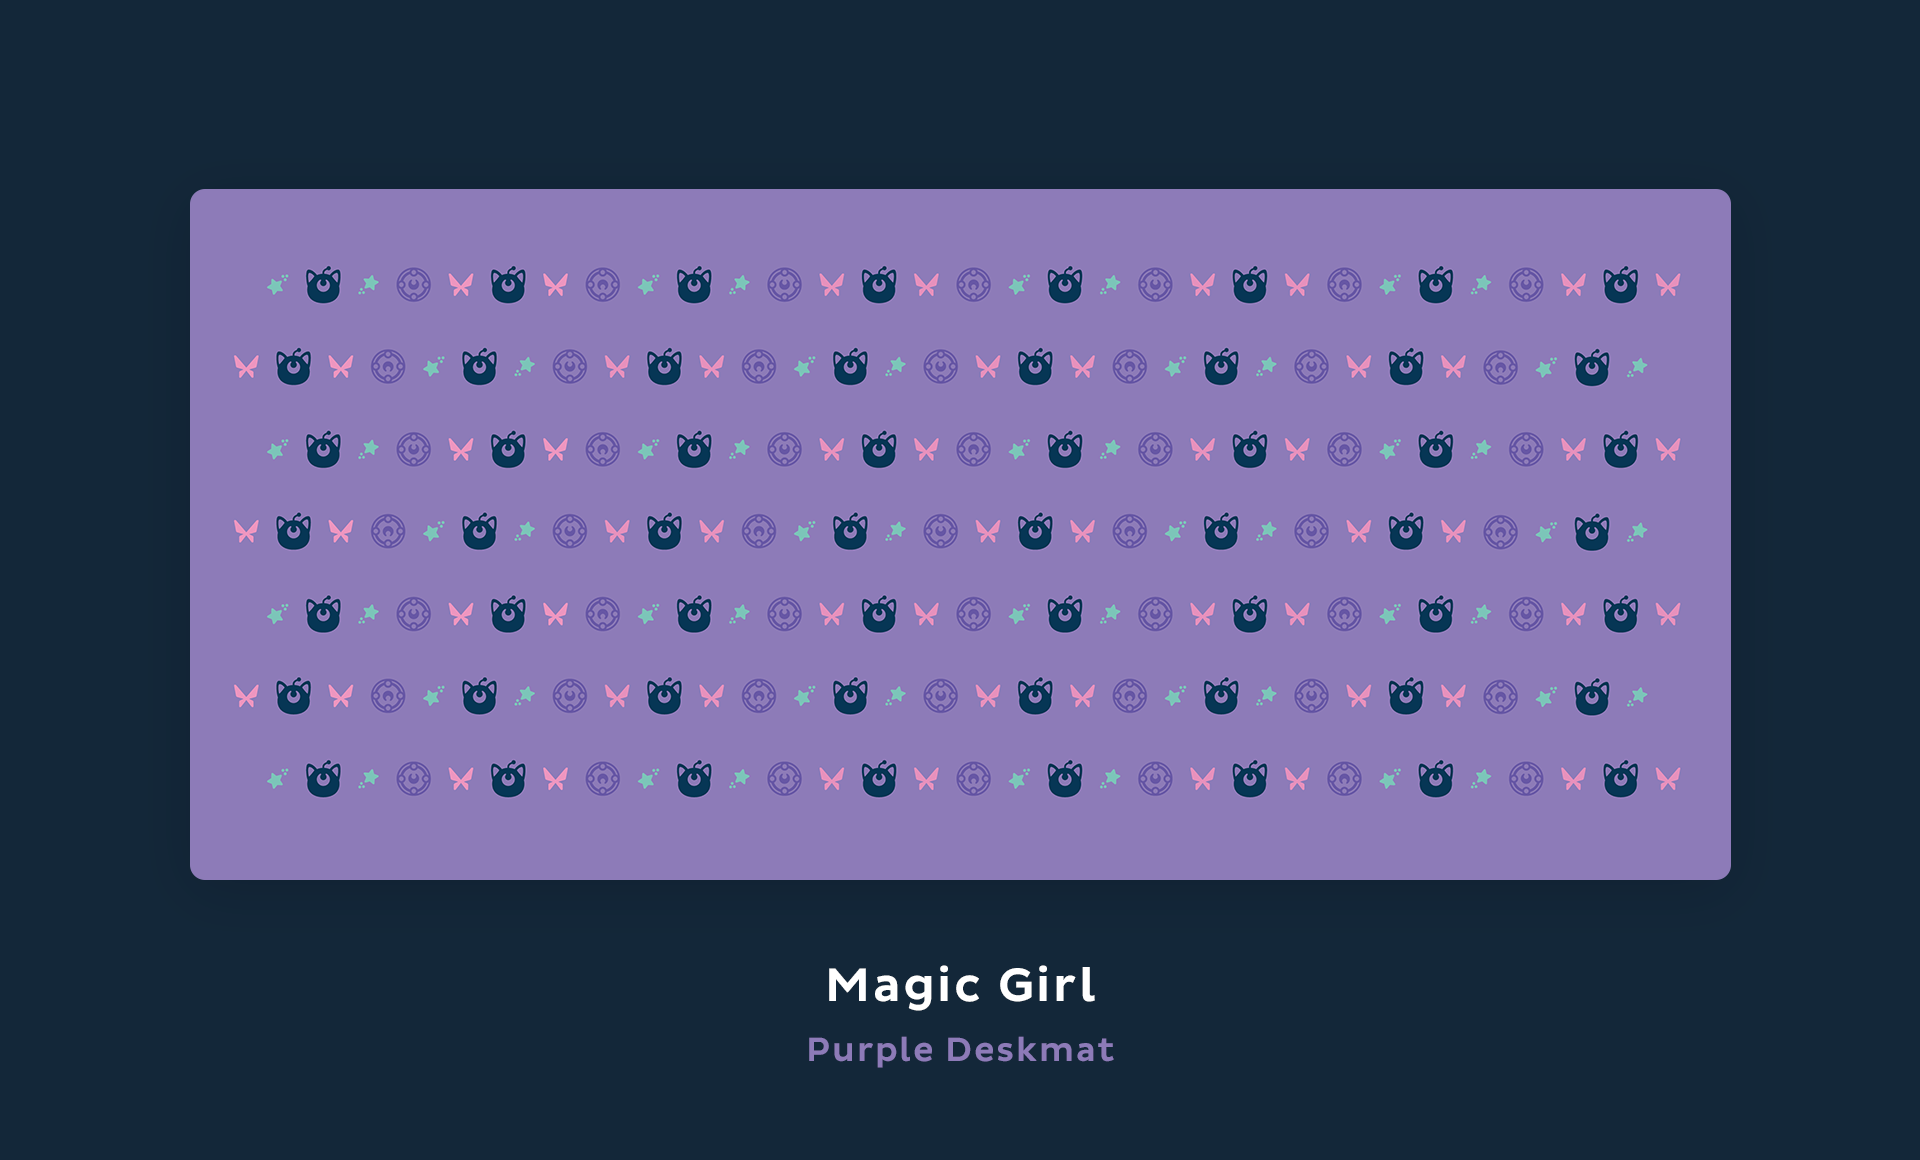 Magic Girl purple deskmat.